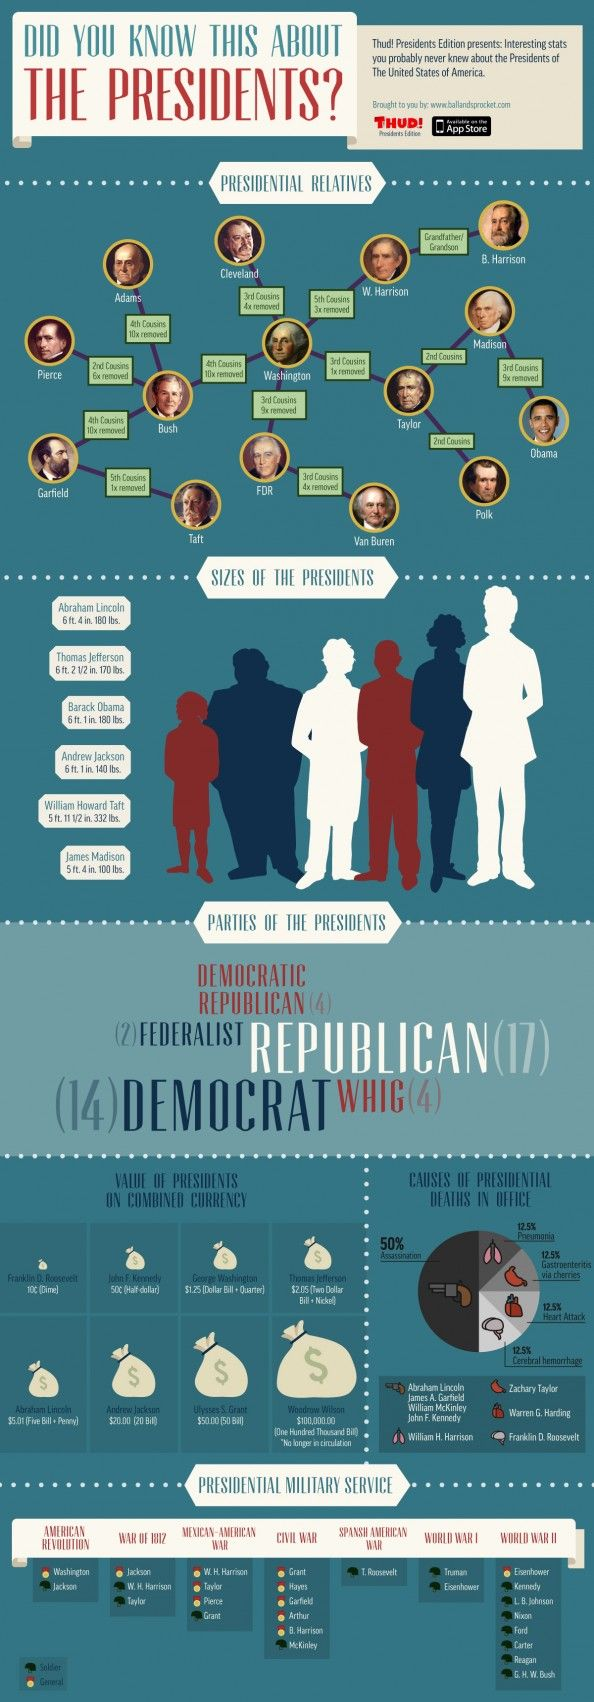 Did You Know This About The Presidents?